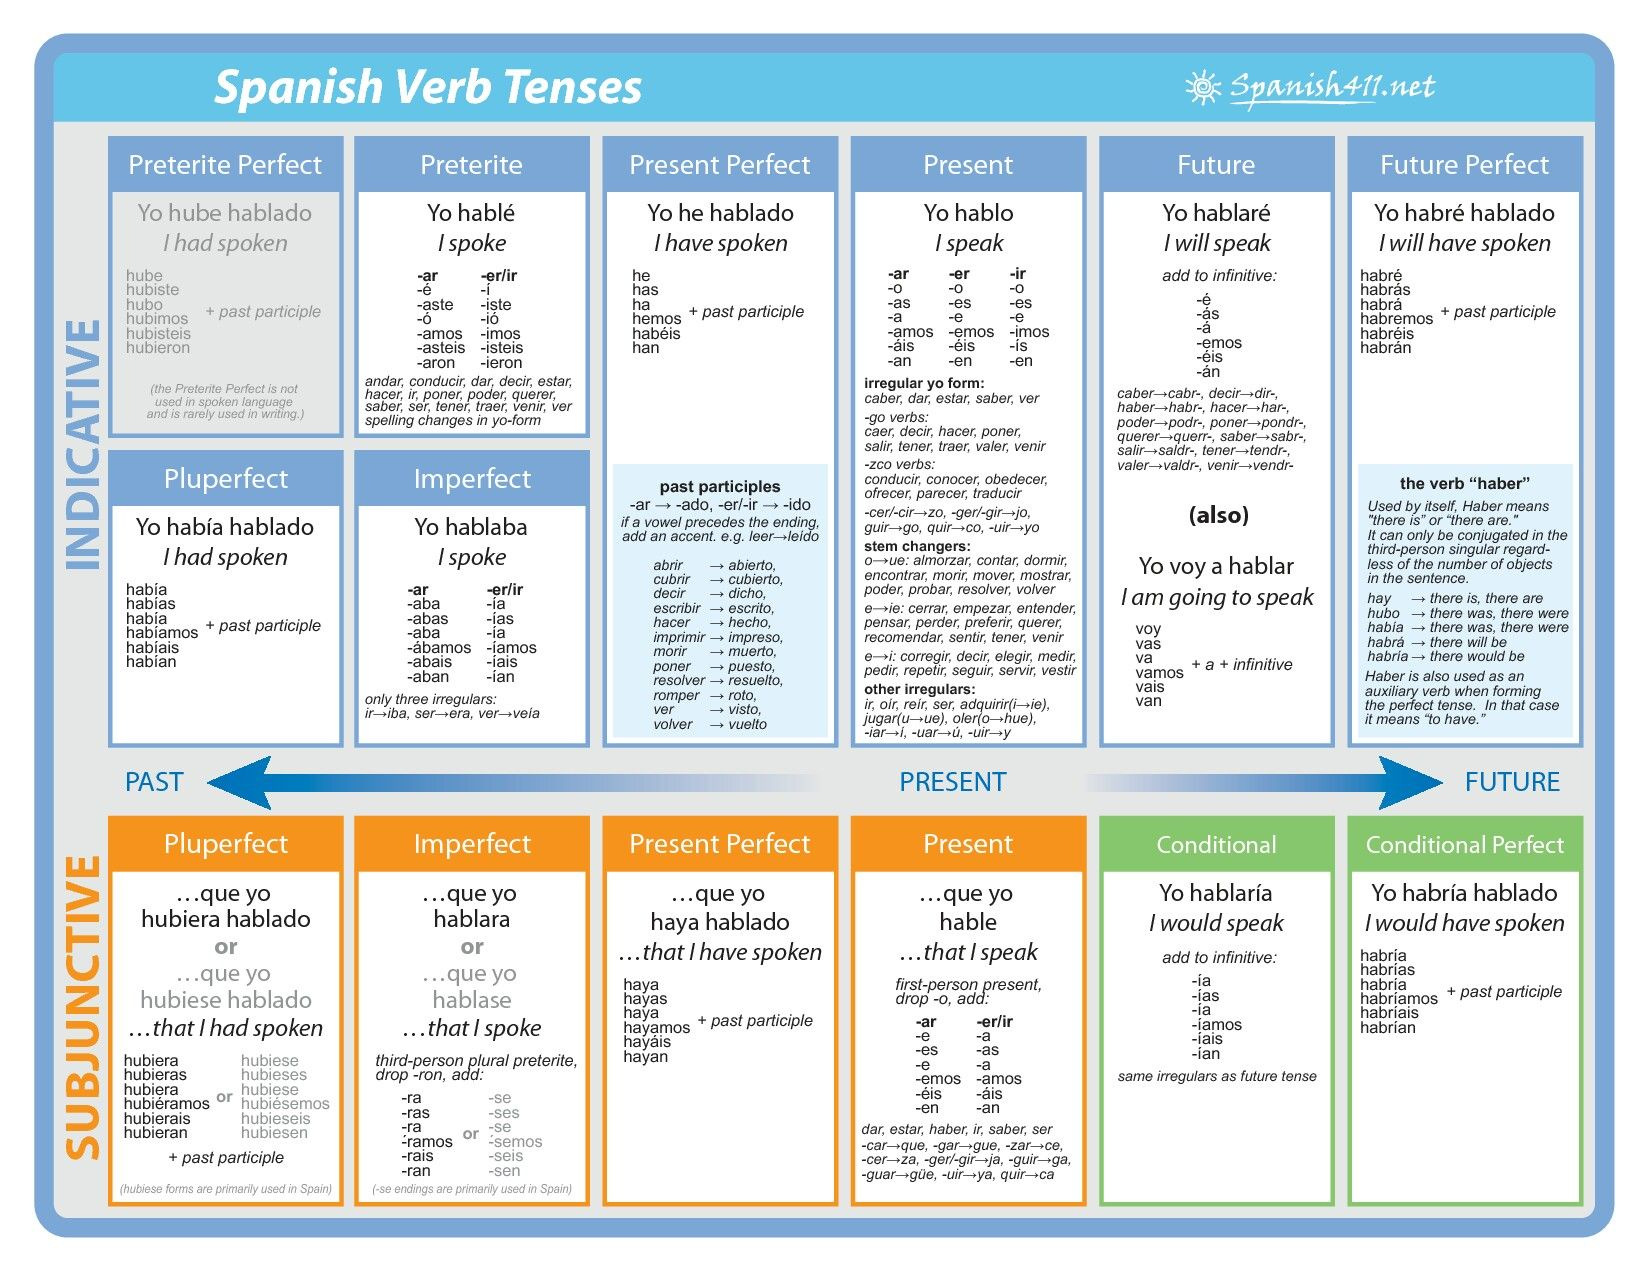 Spanish Been Tenses And Meanings